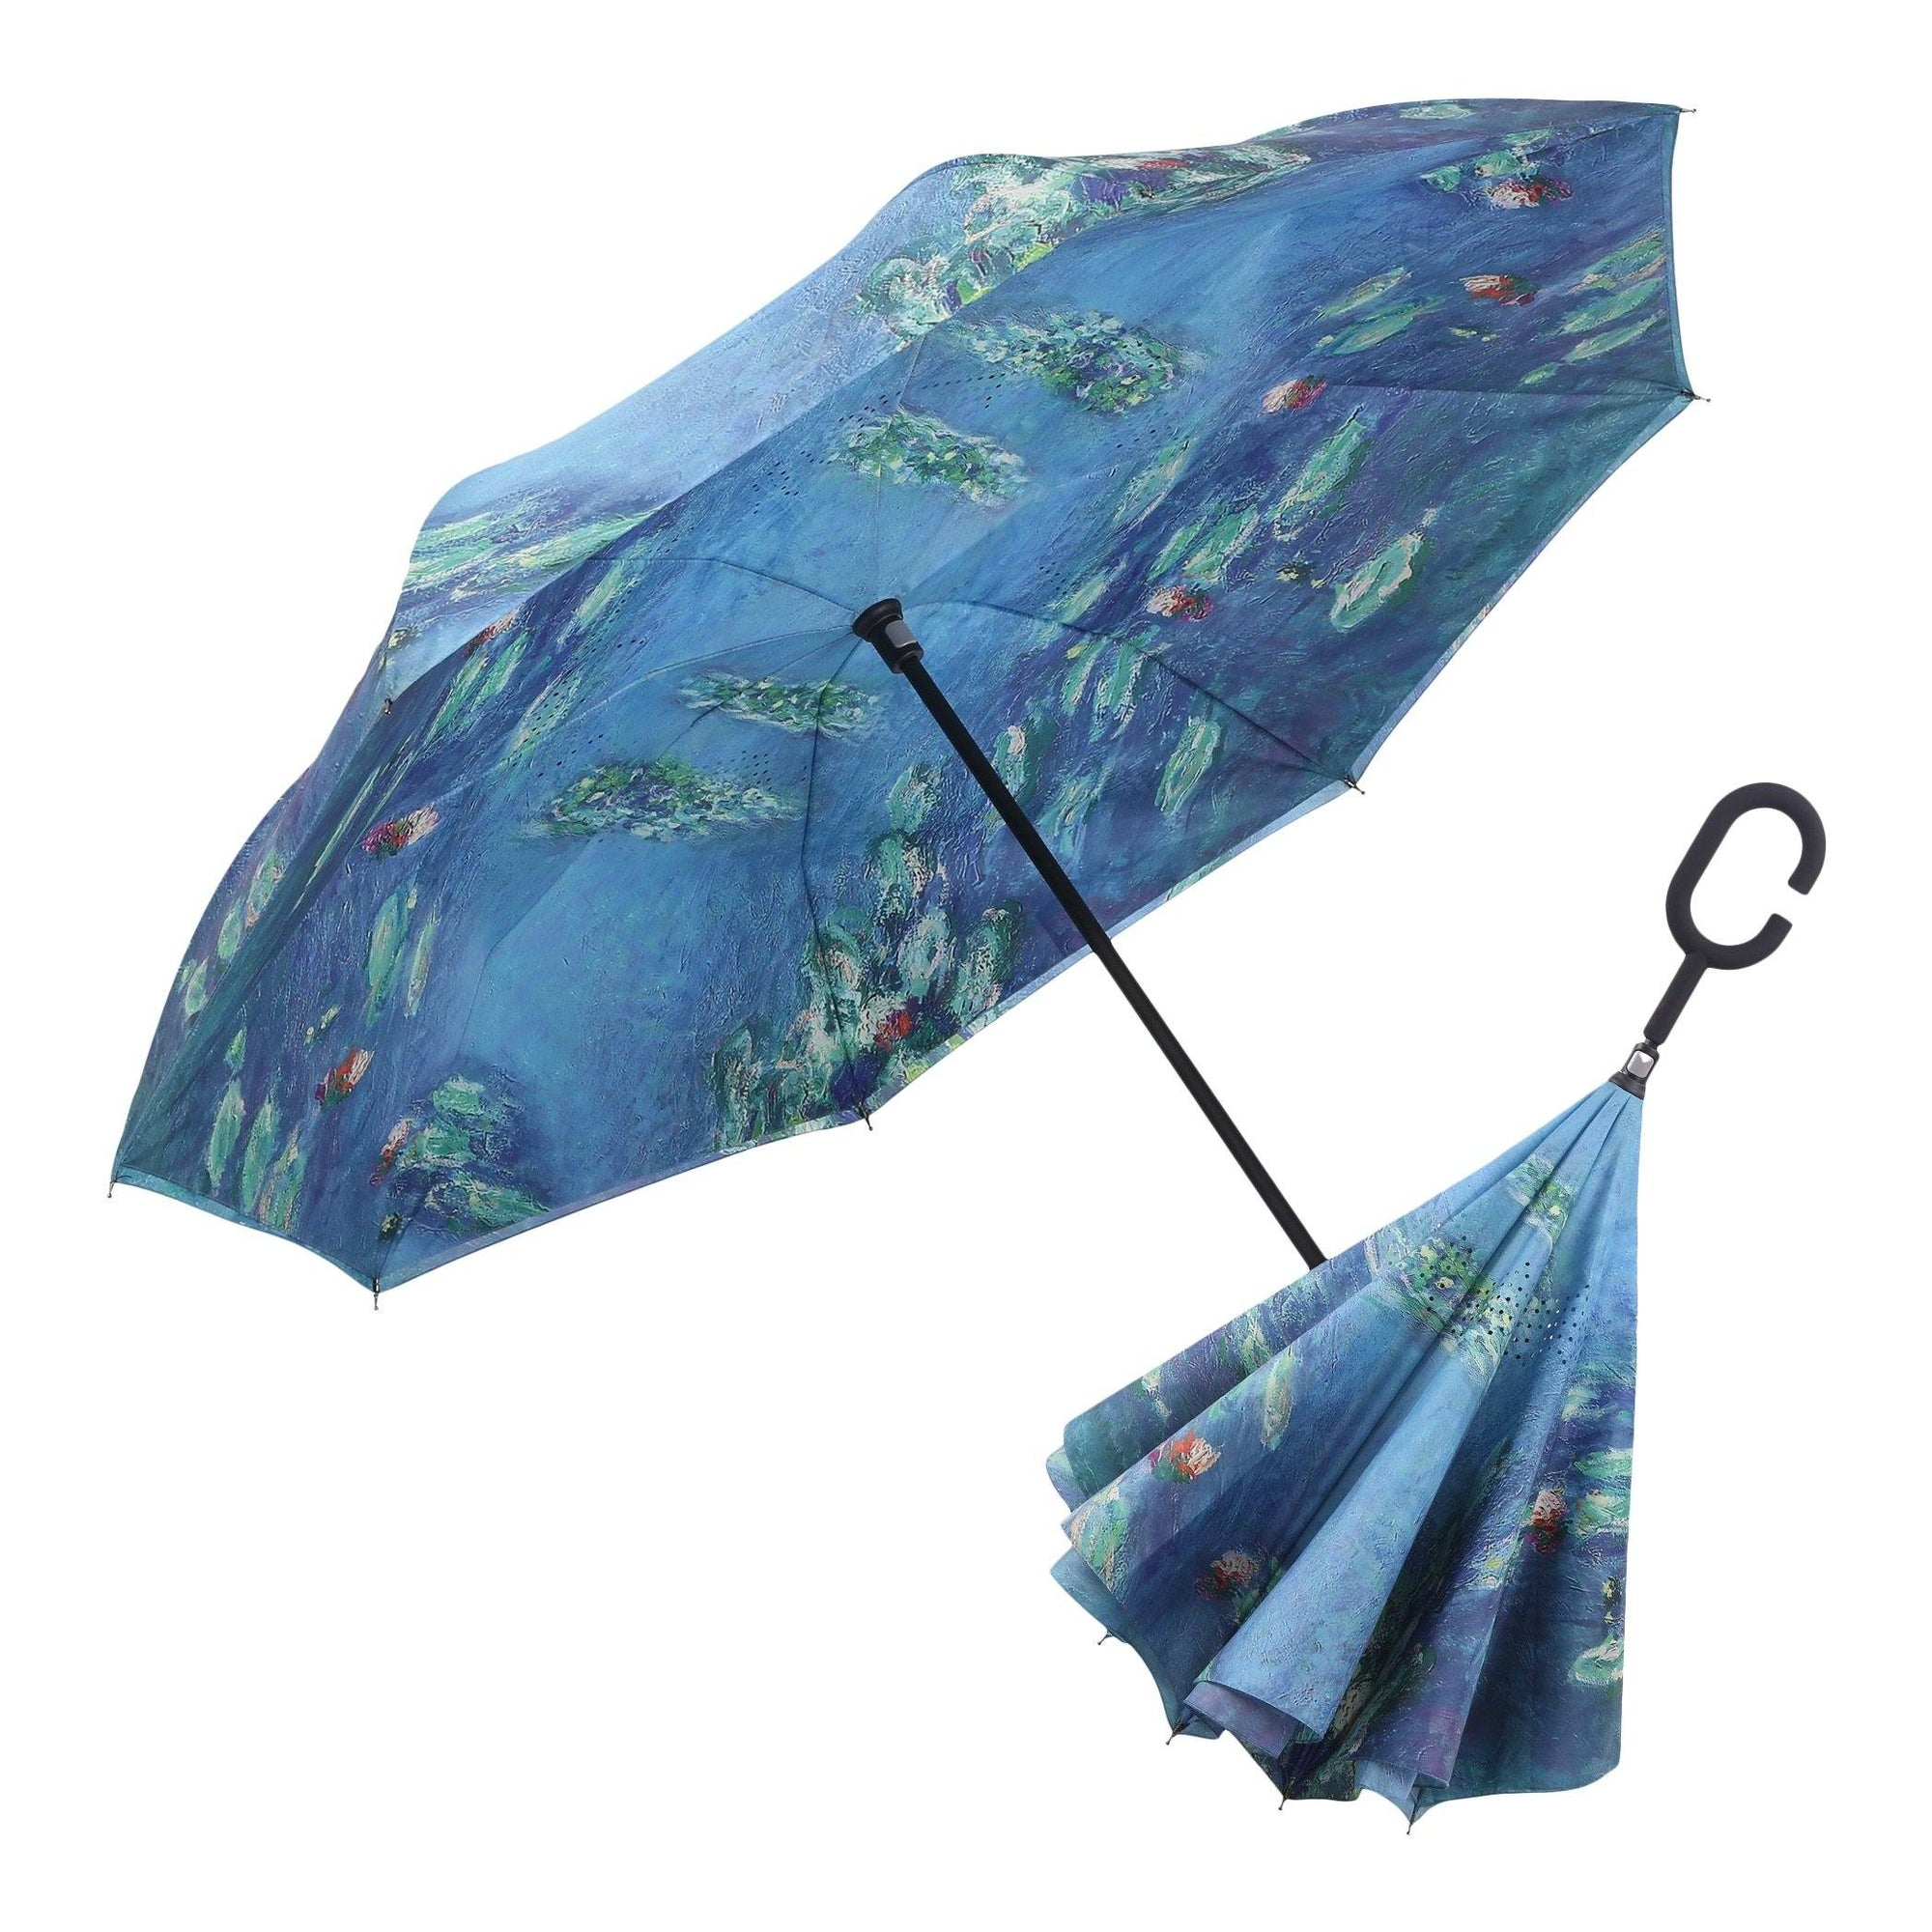 Image of a RainCaper Monet Water Lilies inverted umbrella shown both open and closed